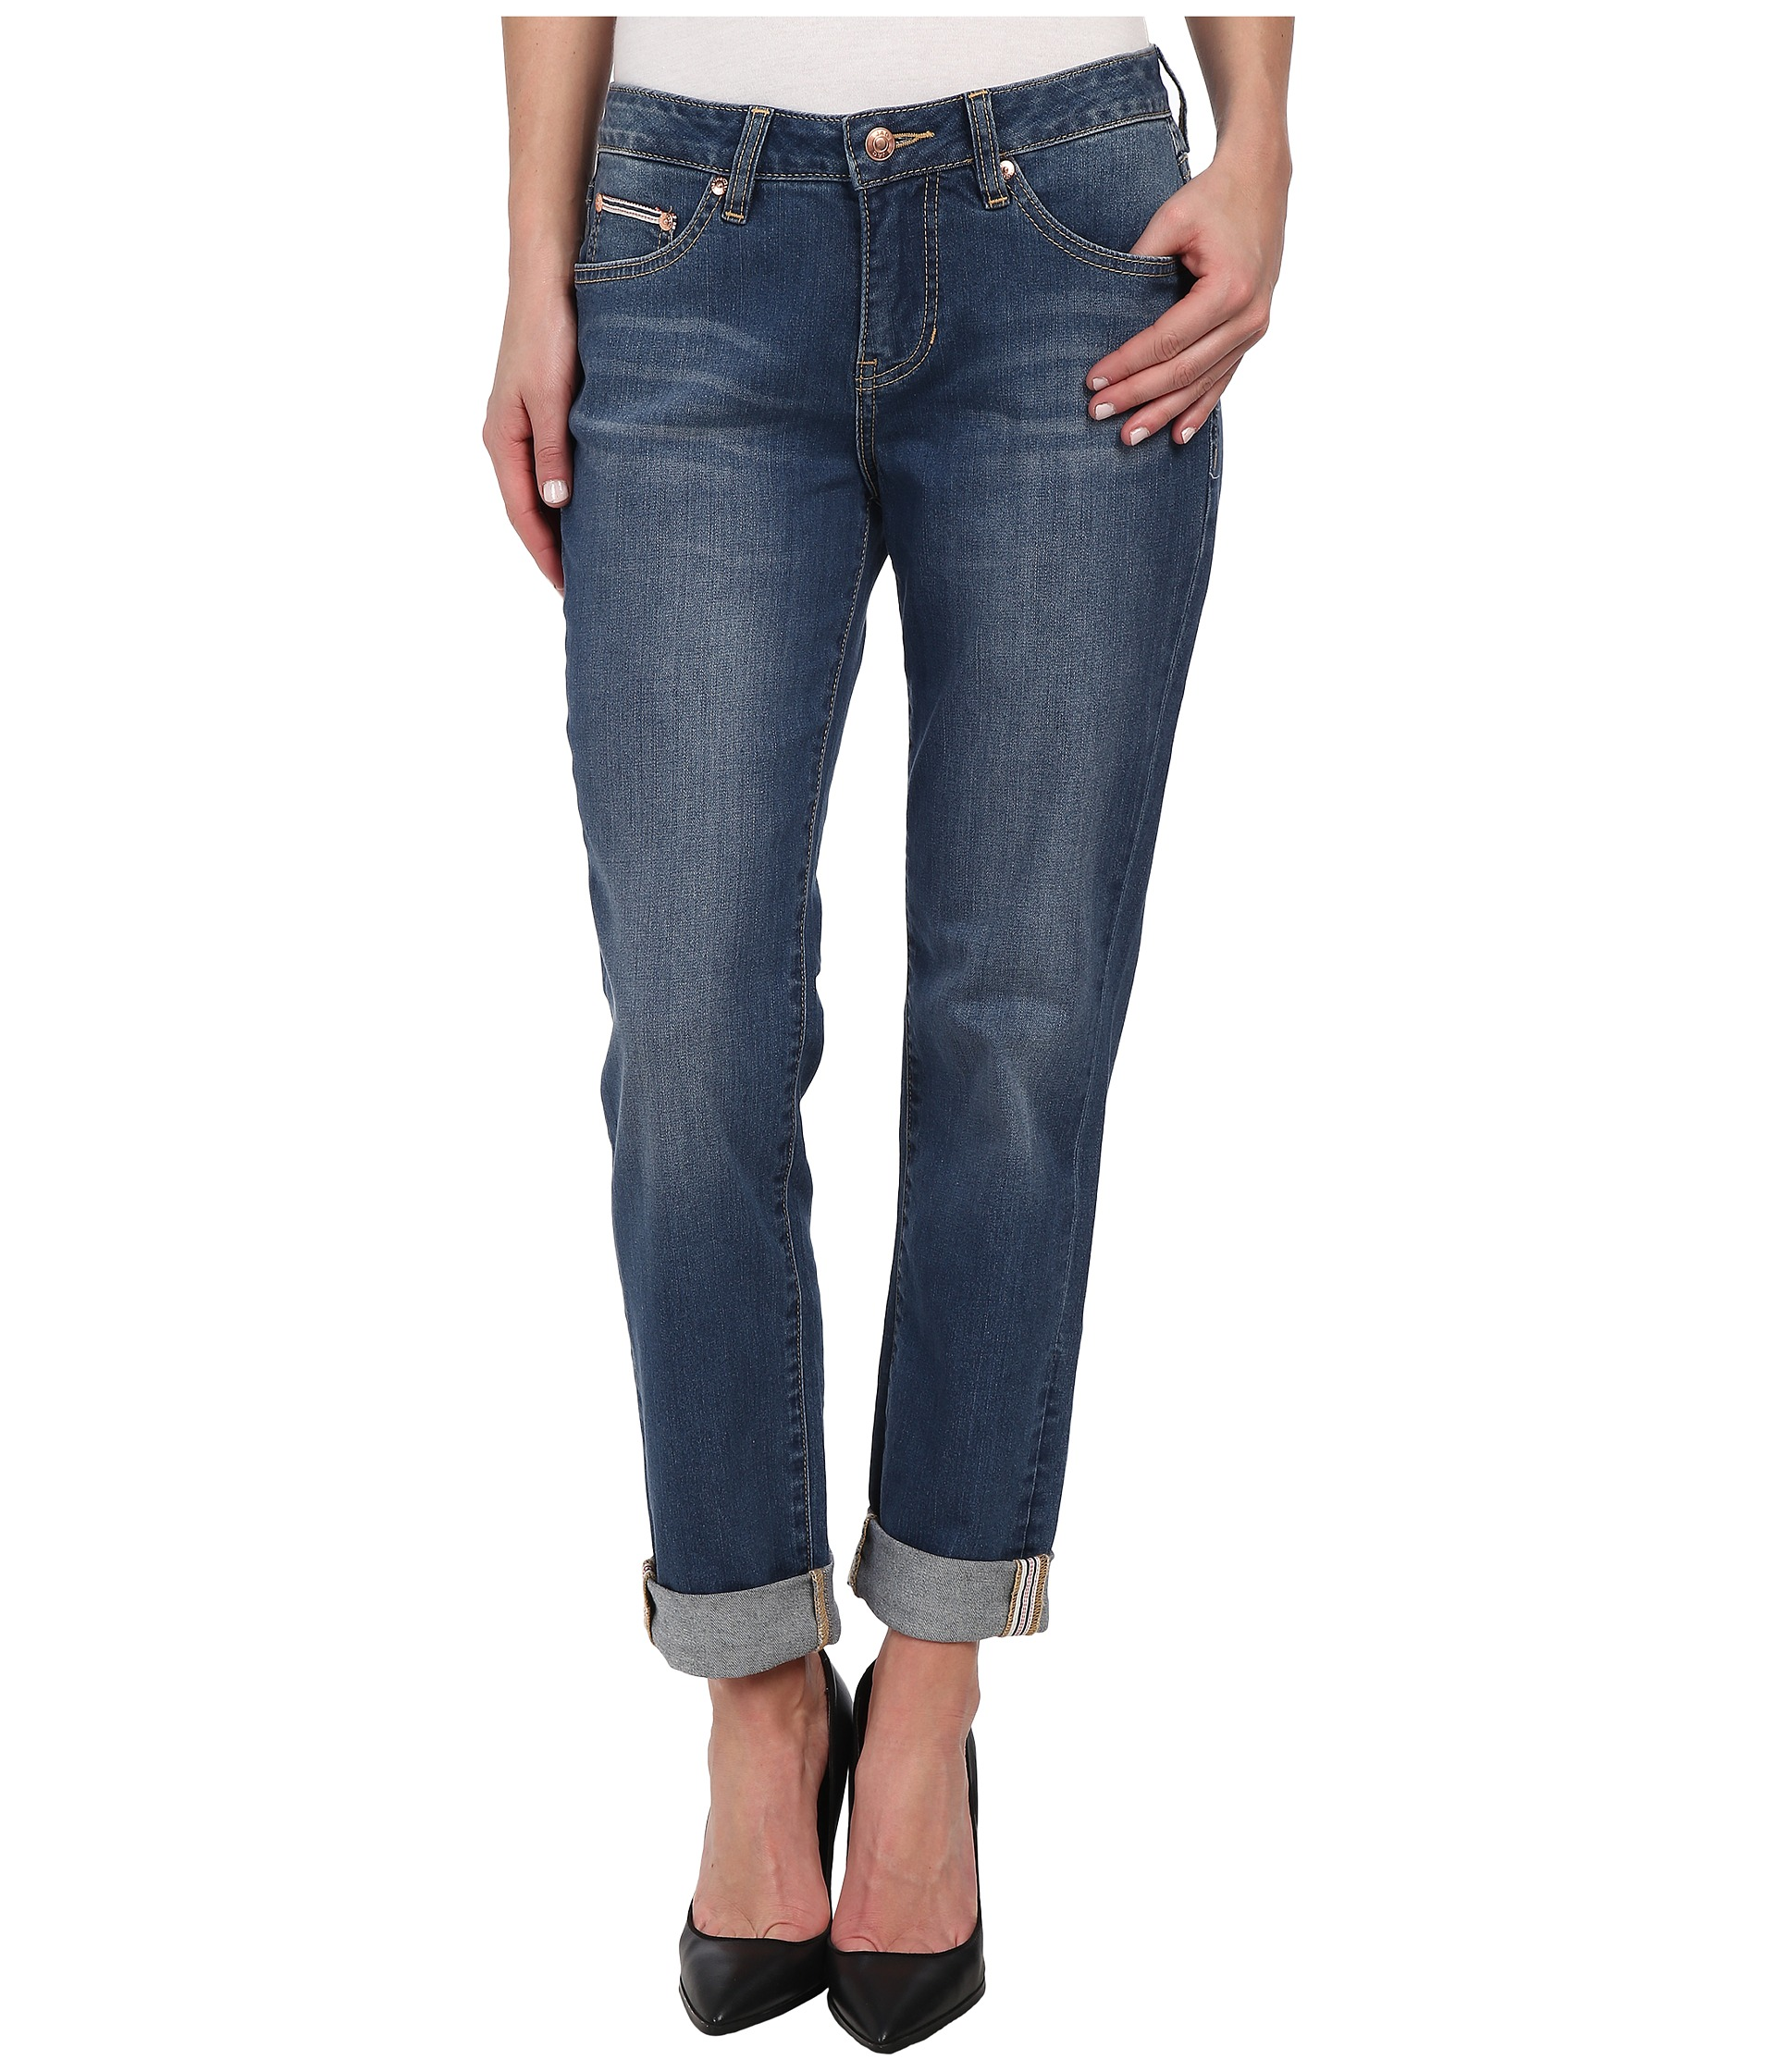 Jag Jeans Henry Relaxed Boyfriend in Forever Blue - Zappos.com Free Shipping BOTH Ways